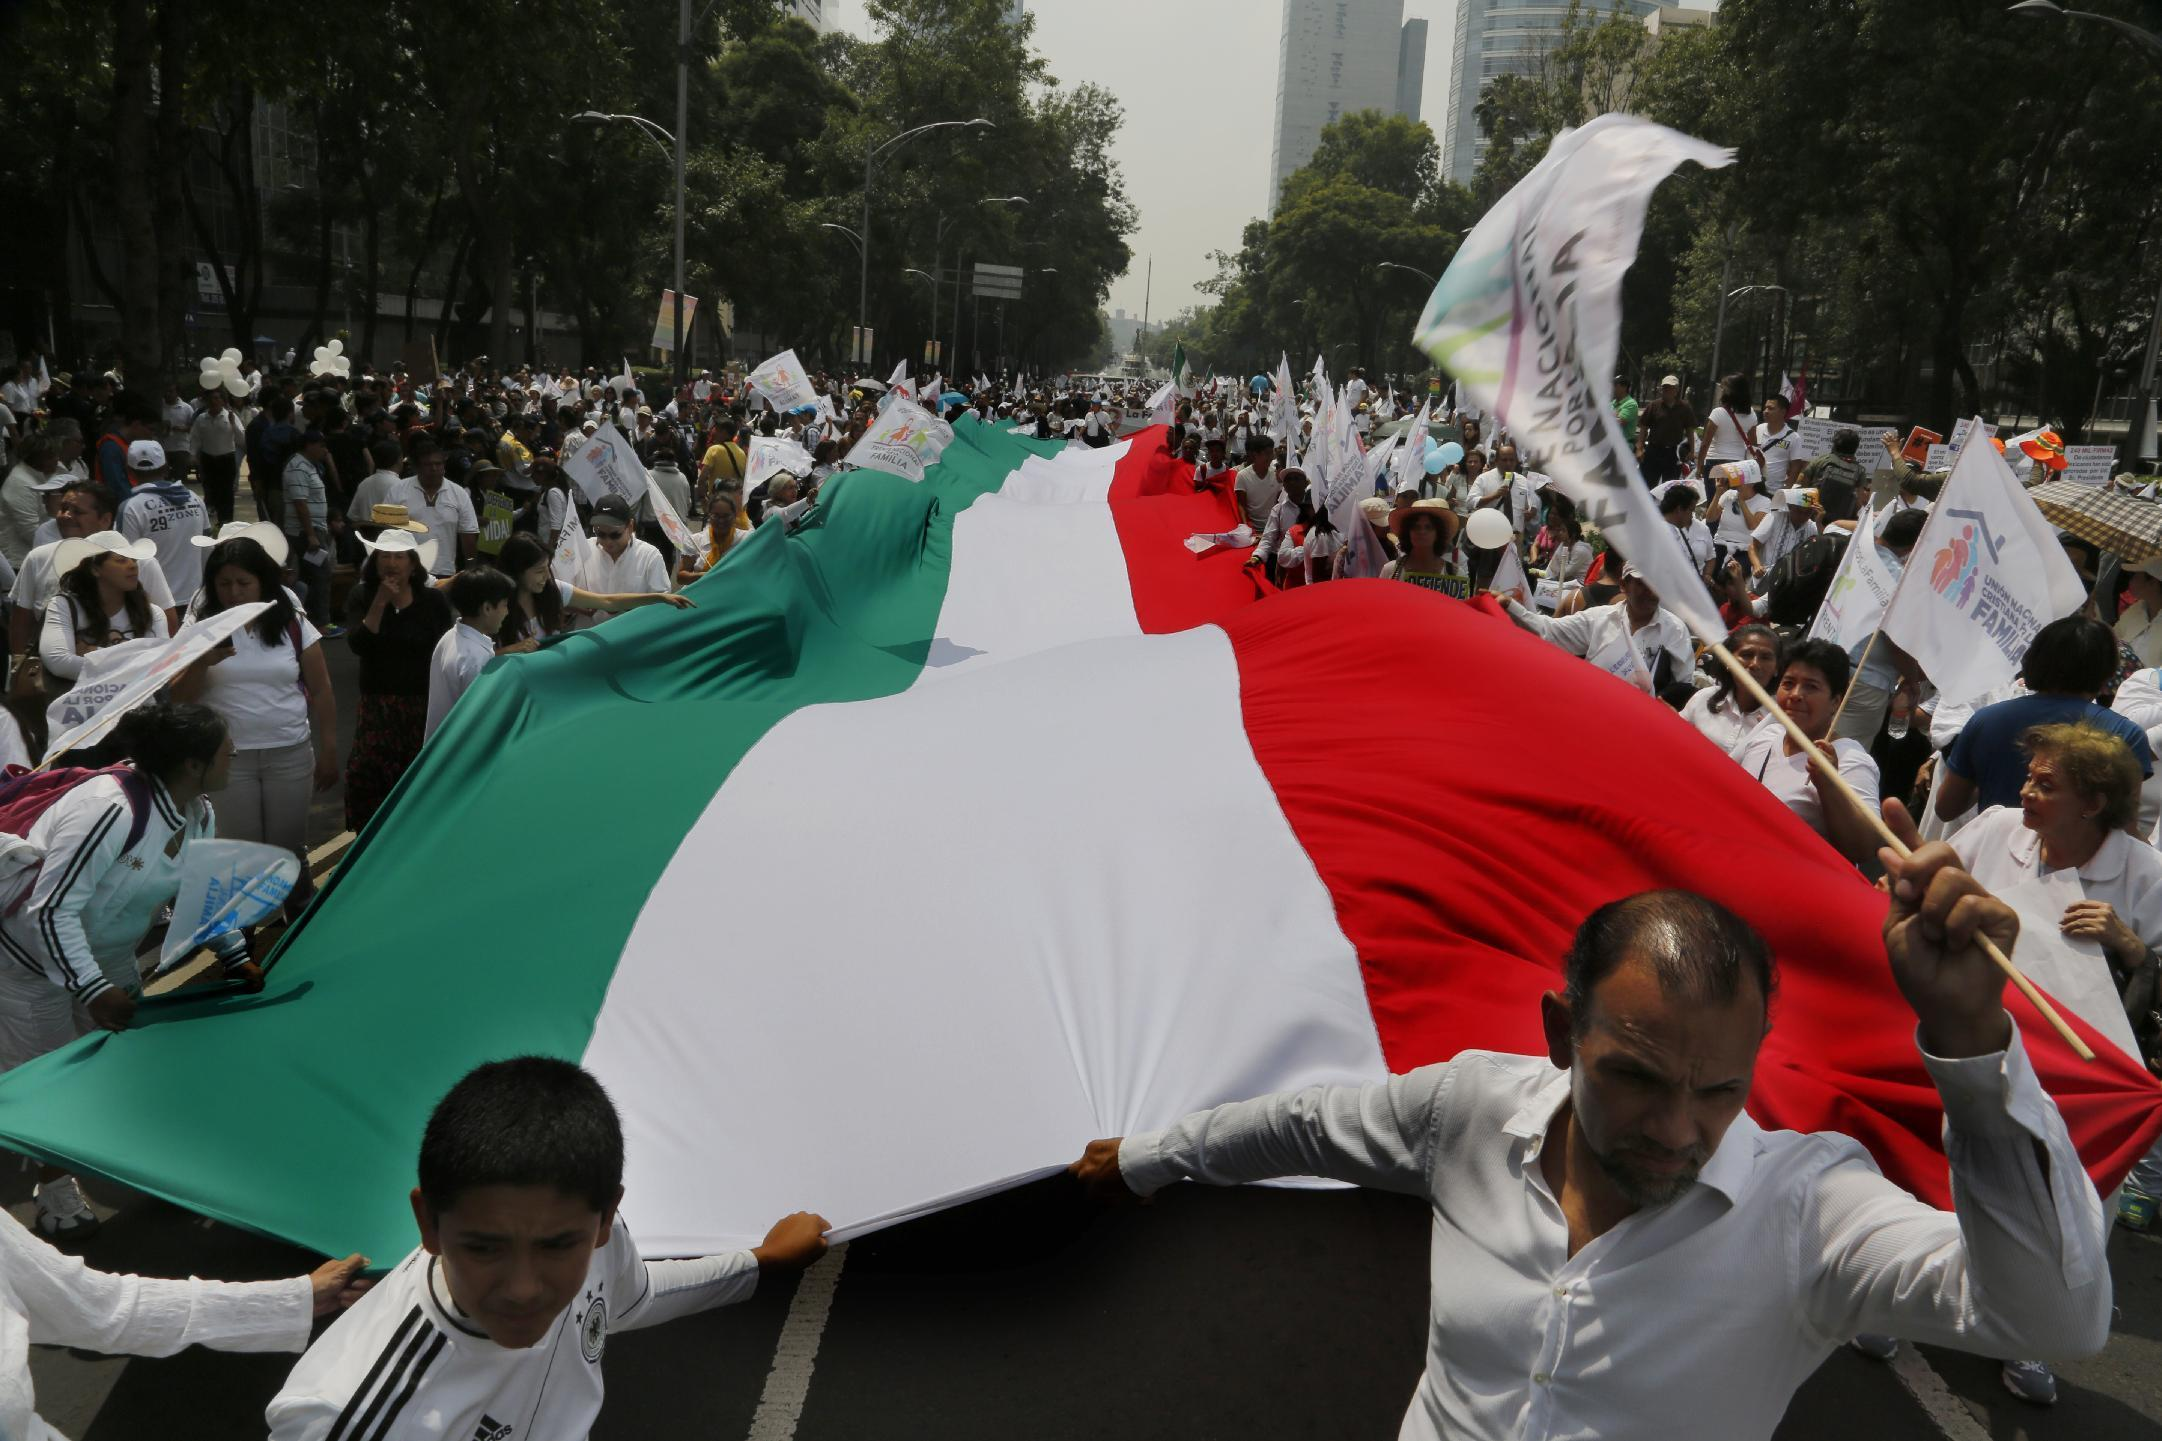 Tens of thousands march against same-sex marriage in Mexico